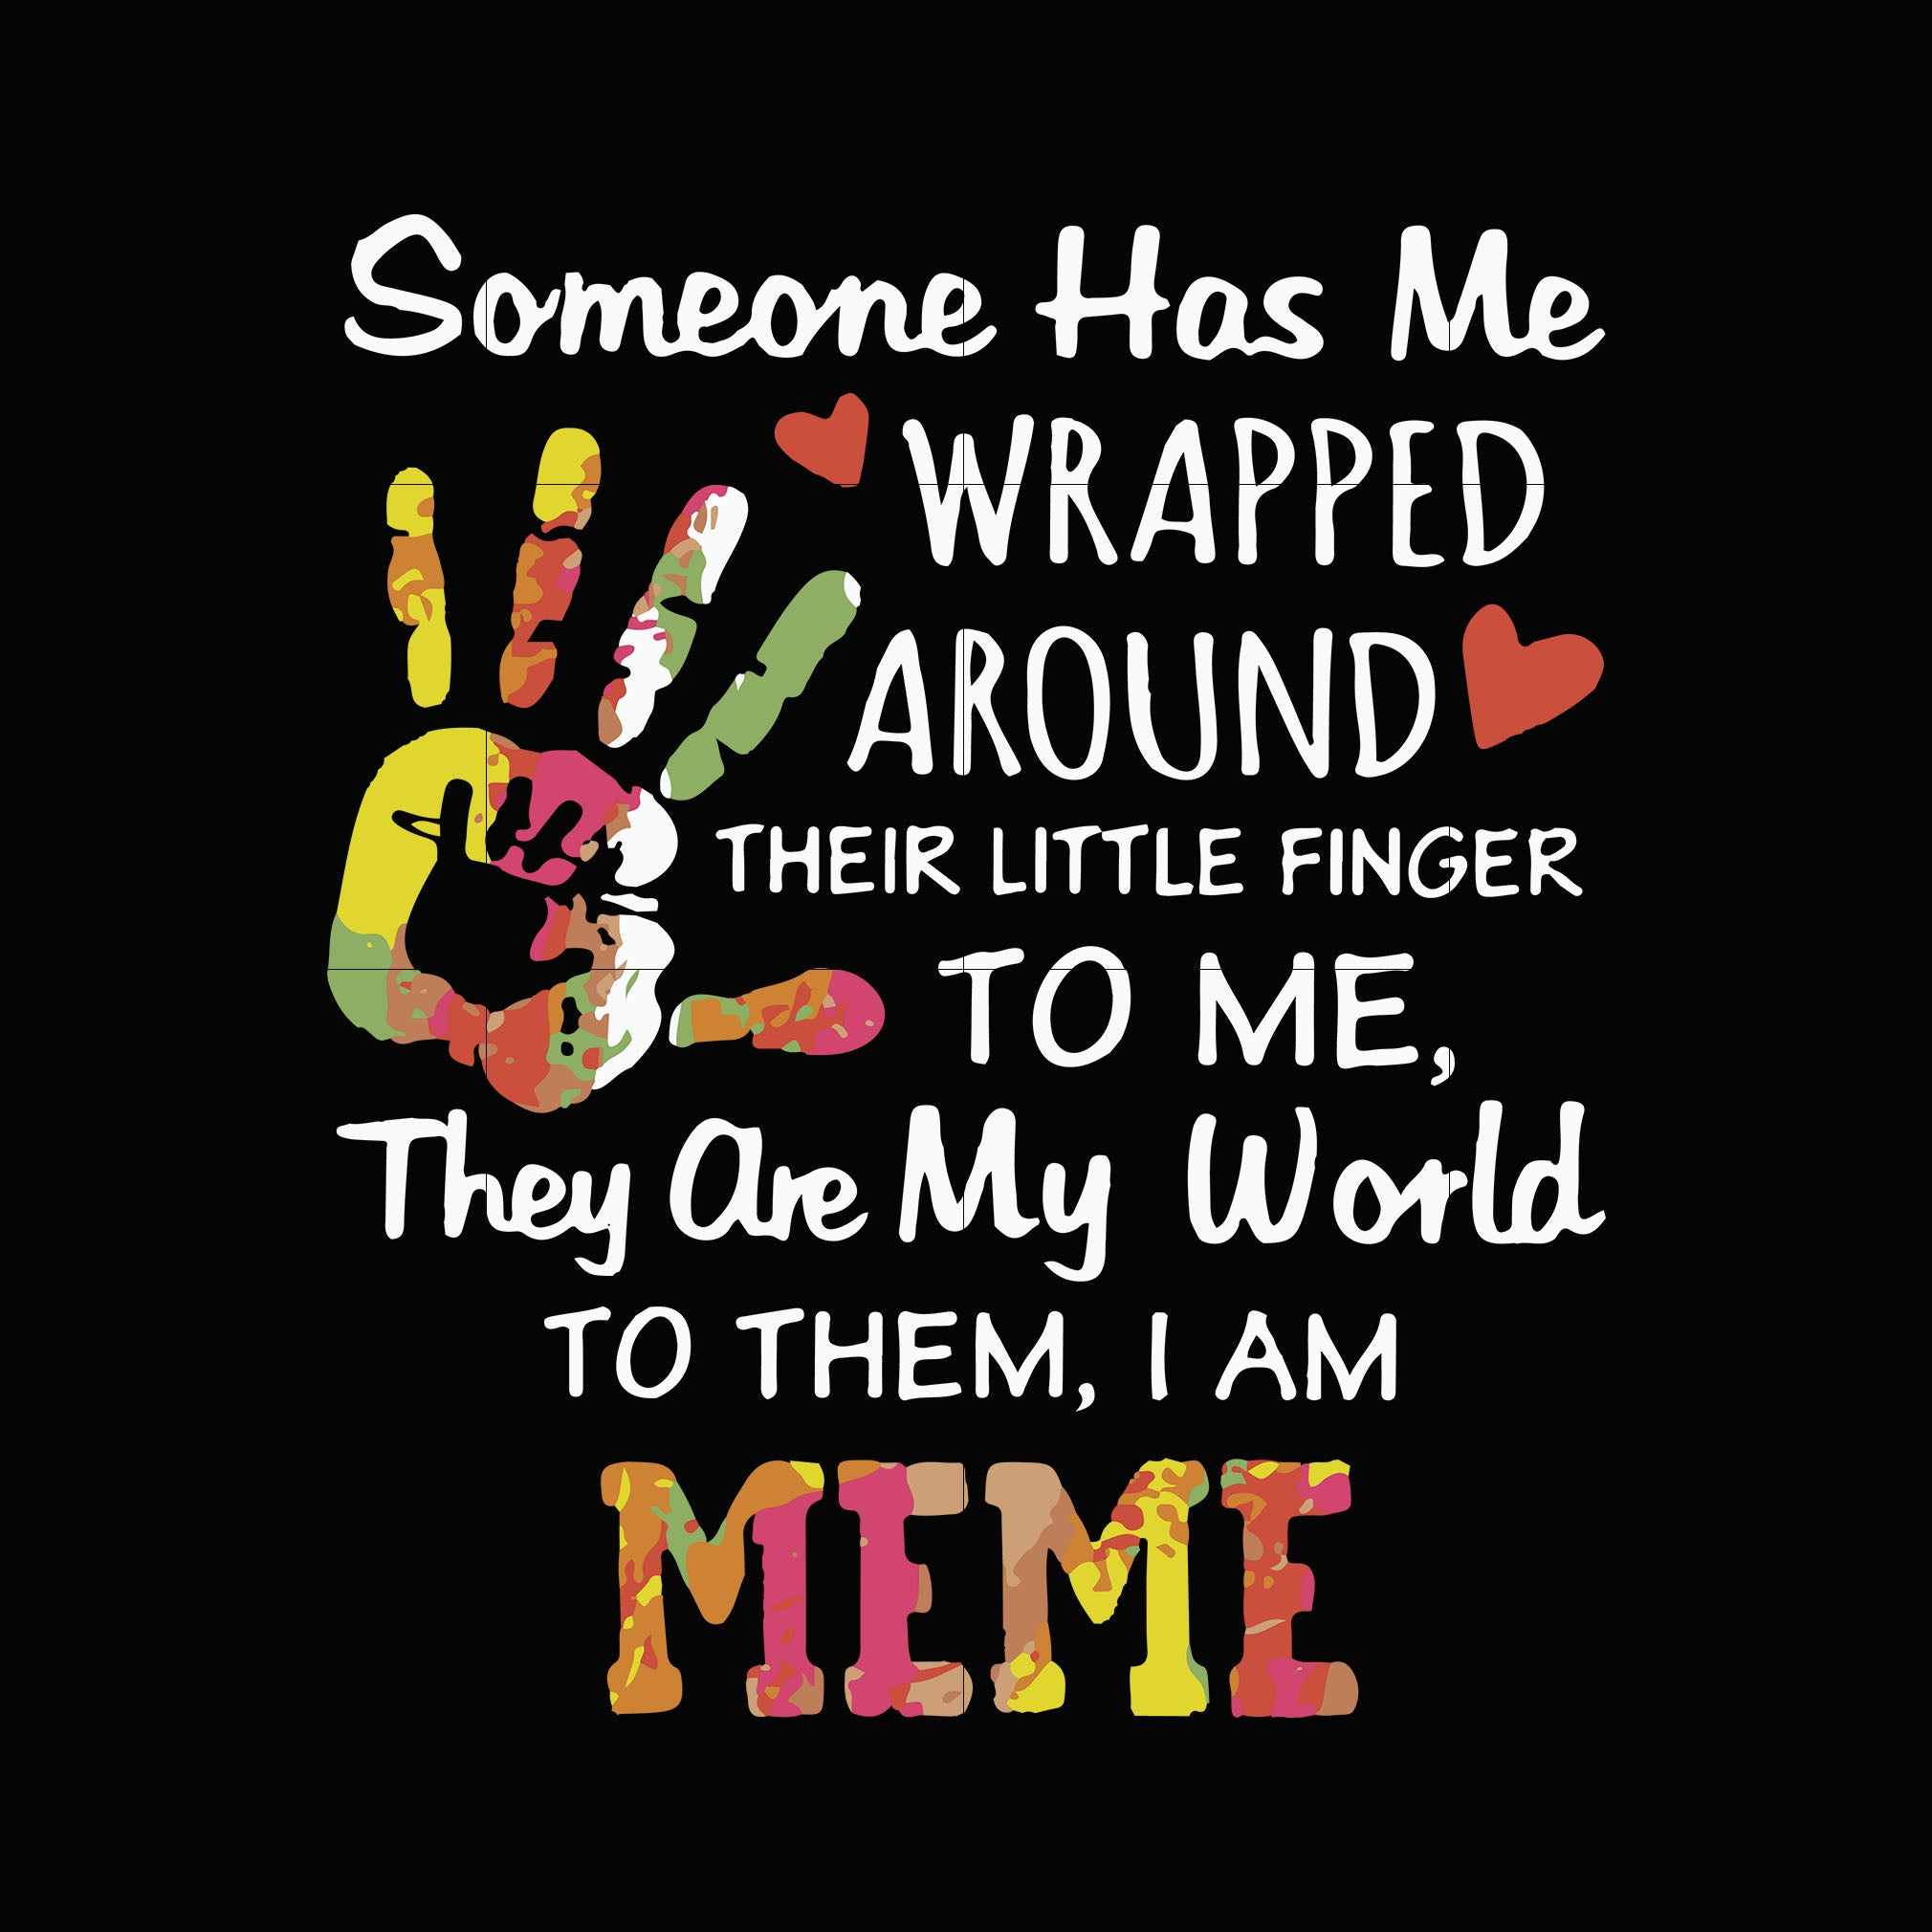 Someone has me wrapped around their little finger to me they are my world to them i am meme svg,dxf,eps,png digital file